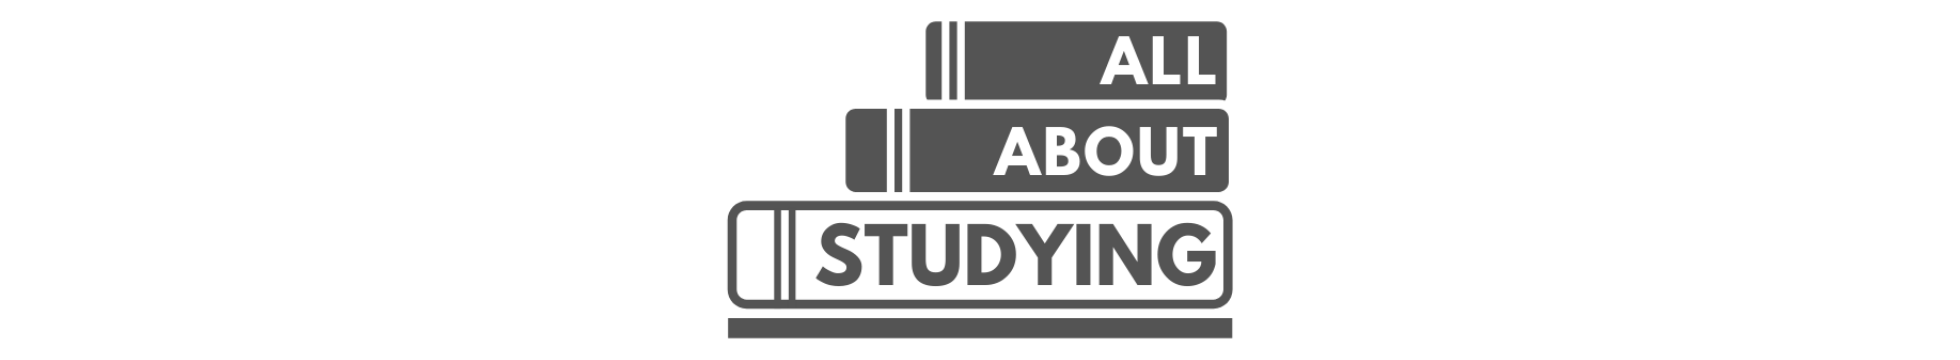 All About Studying